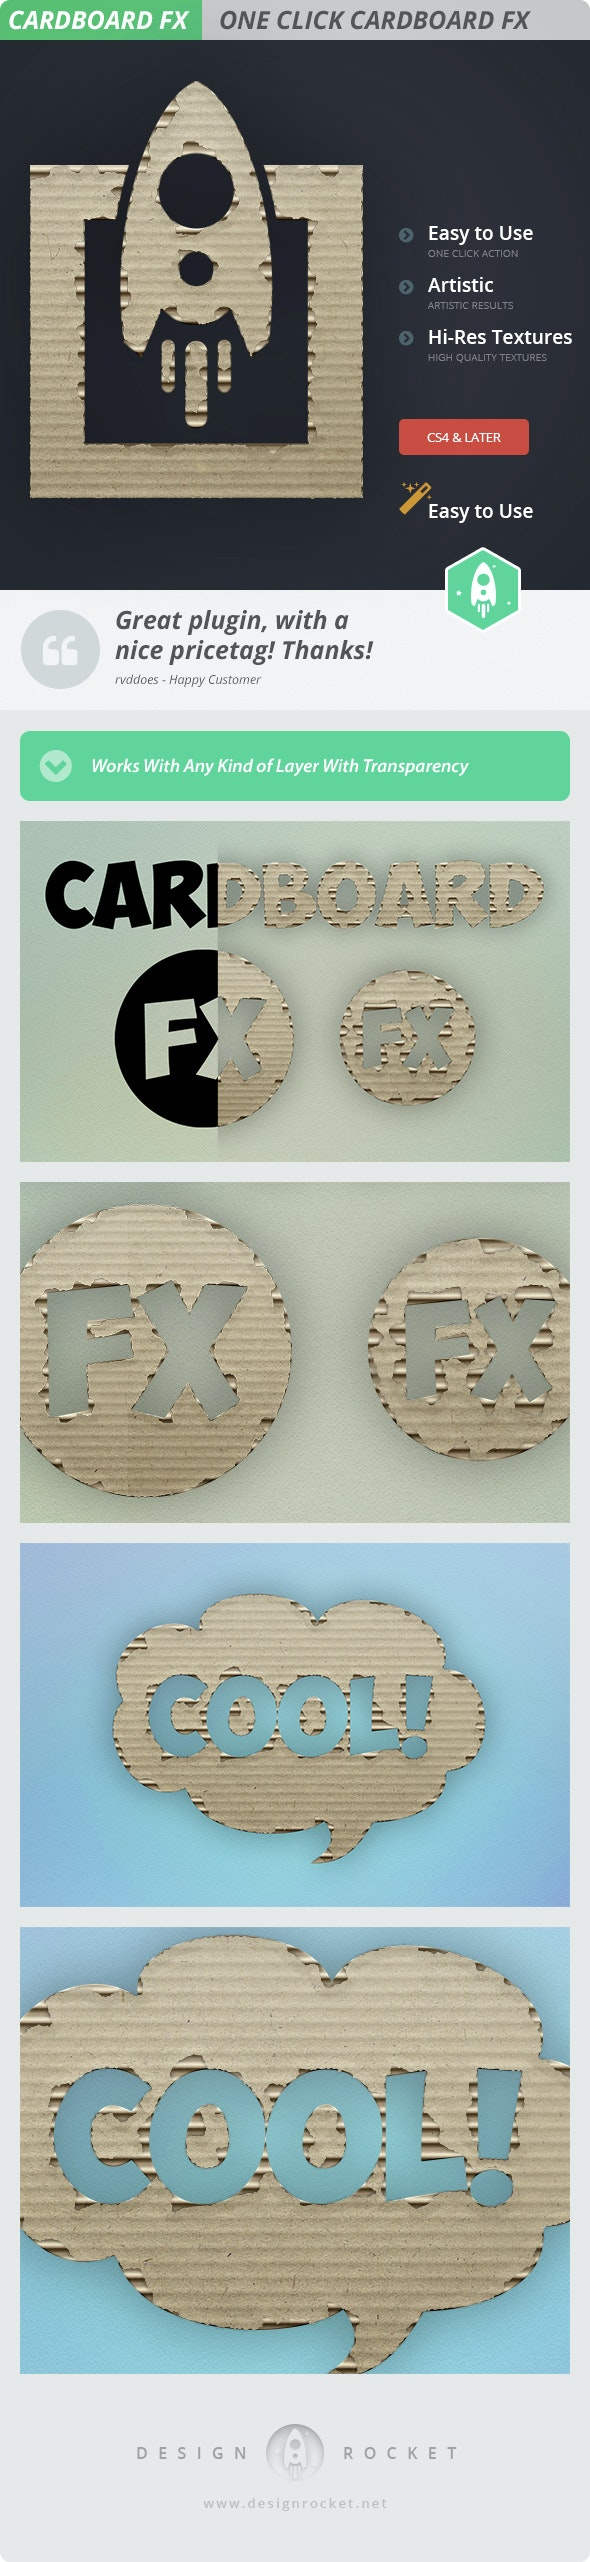 Cardboard FX - Cute Cardboard Action - Actions Photoshop